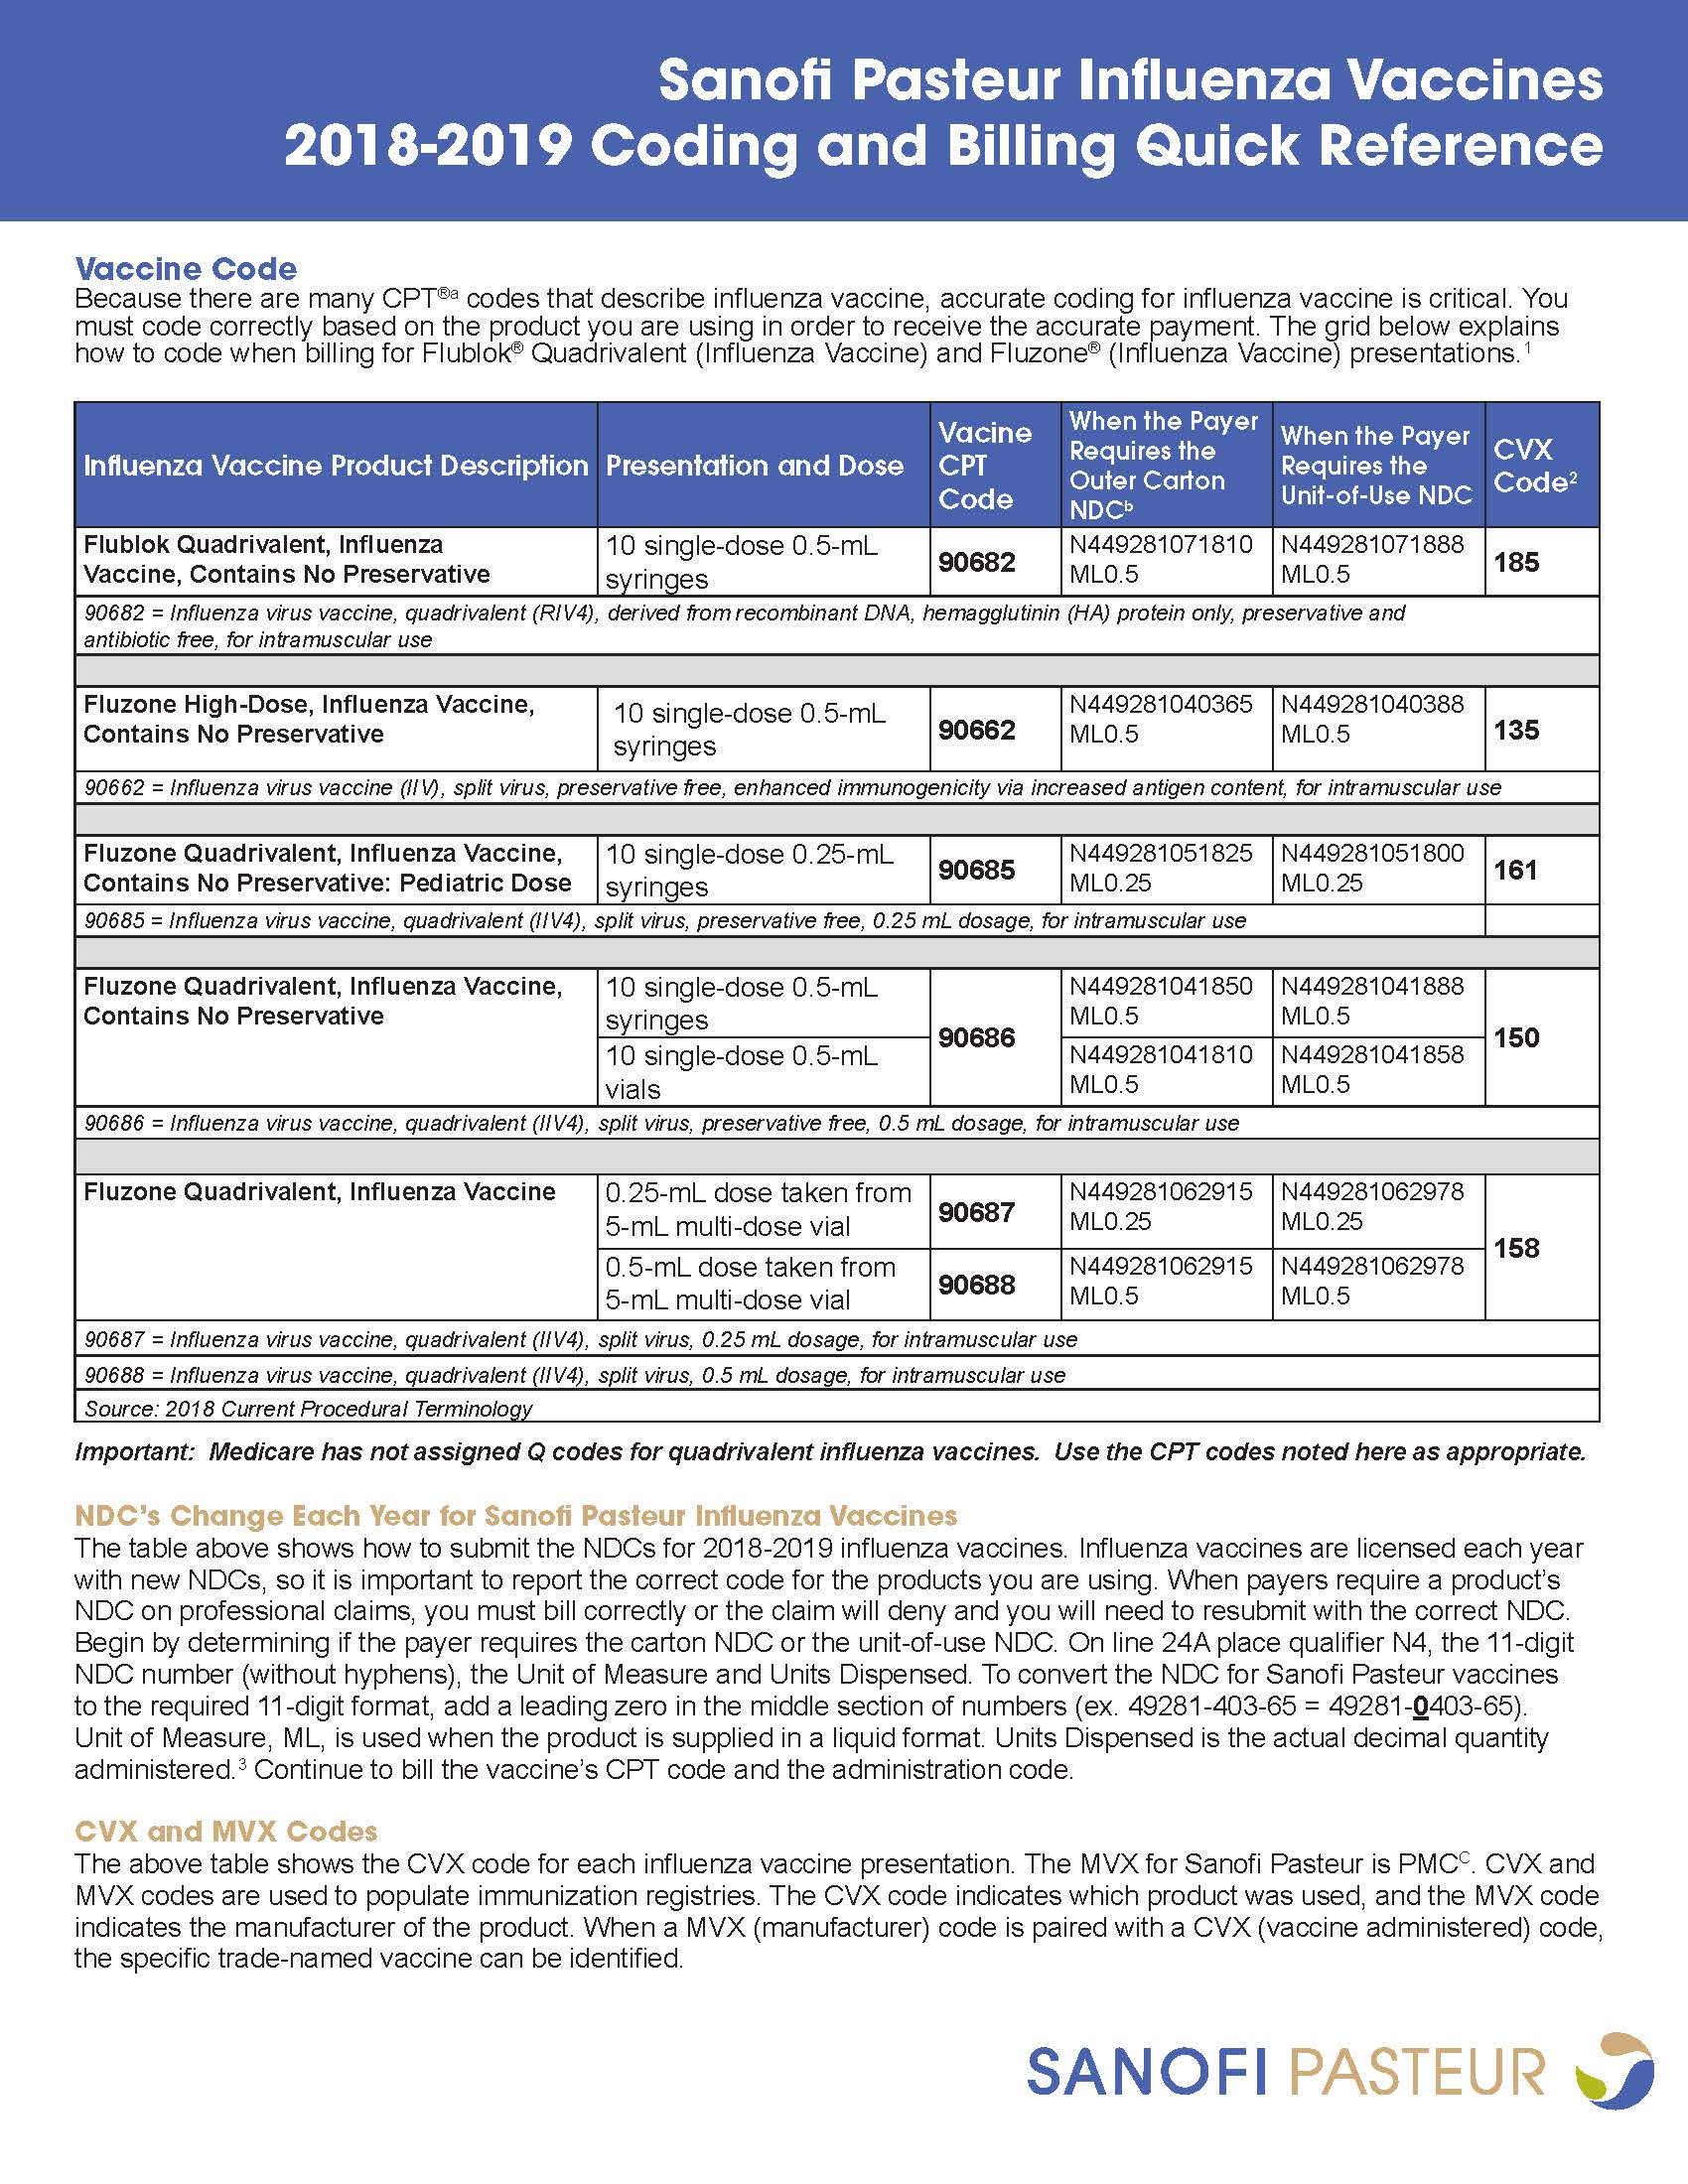 MKT32946-1 Influenza Vaccine 2018-2019 Coding and Billing Quick Reference_Page_1.jpg